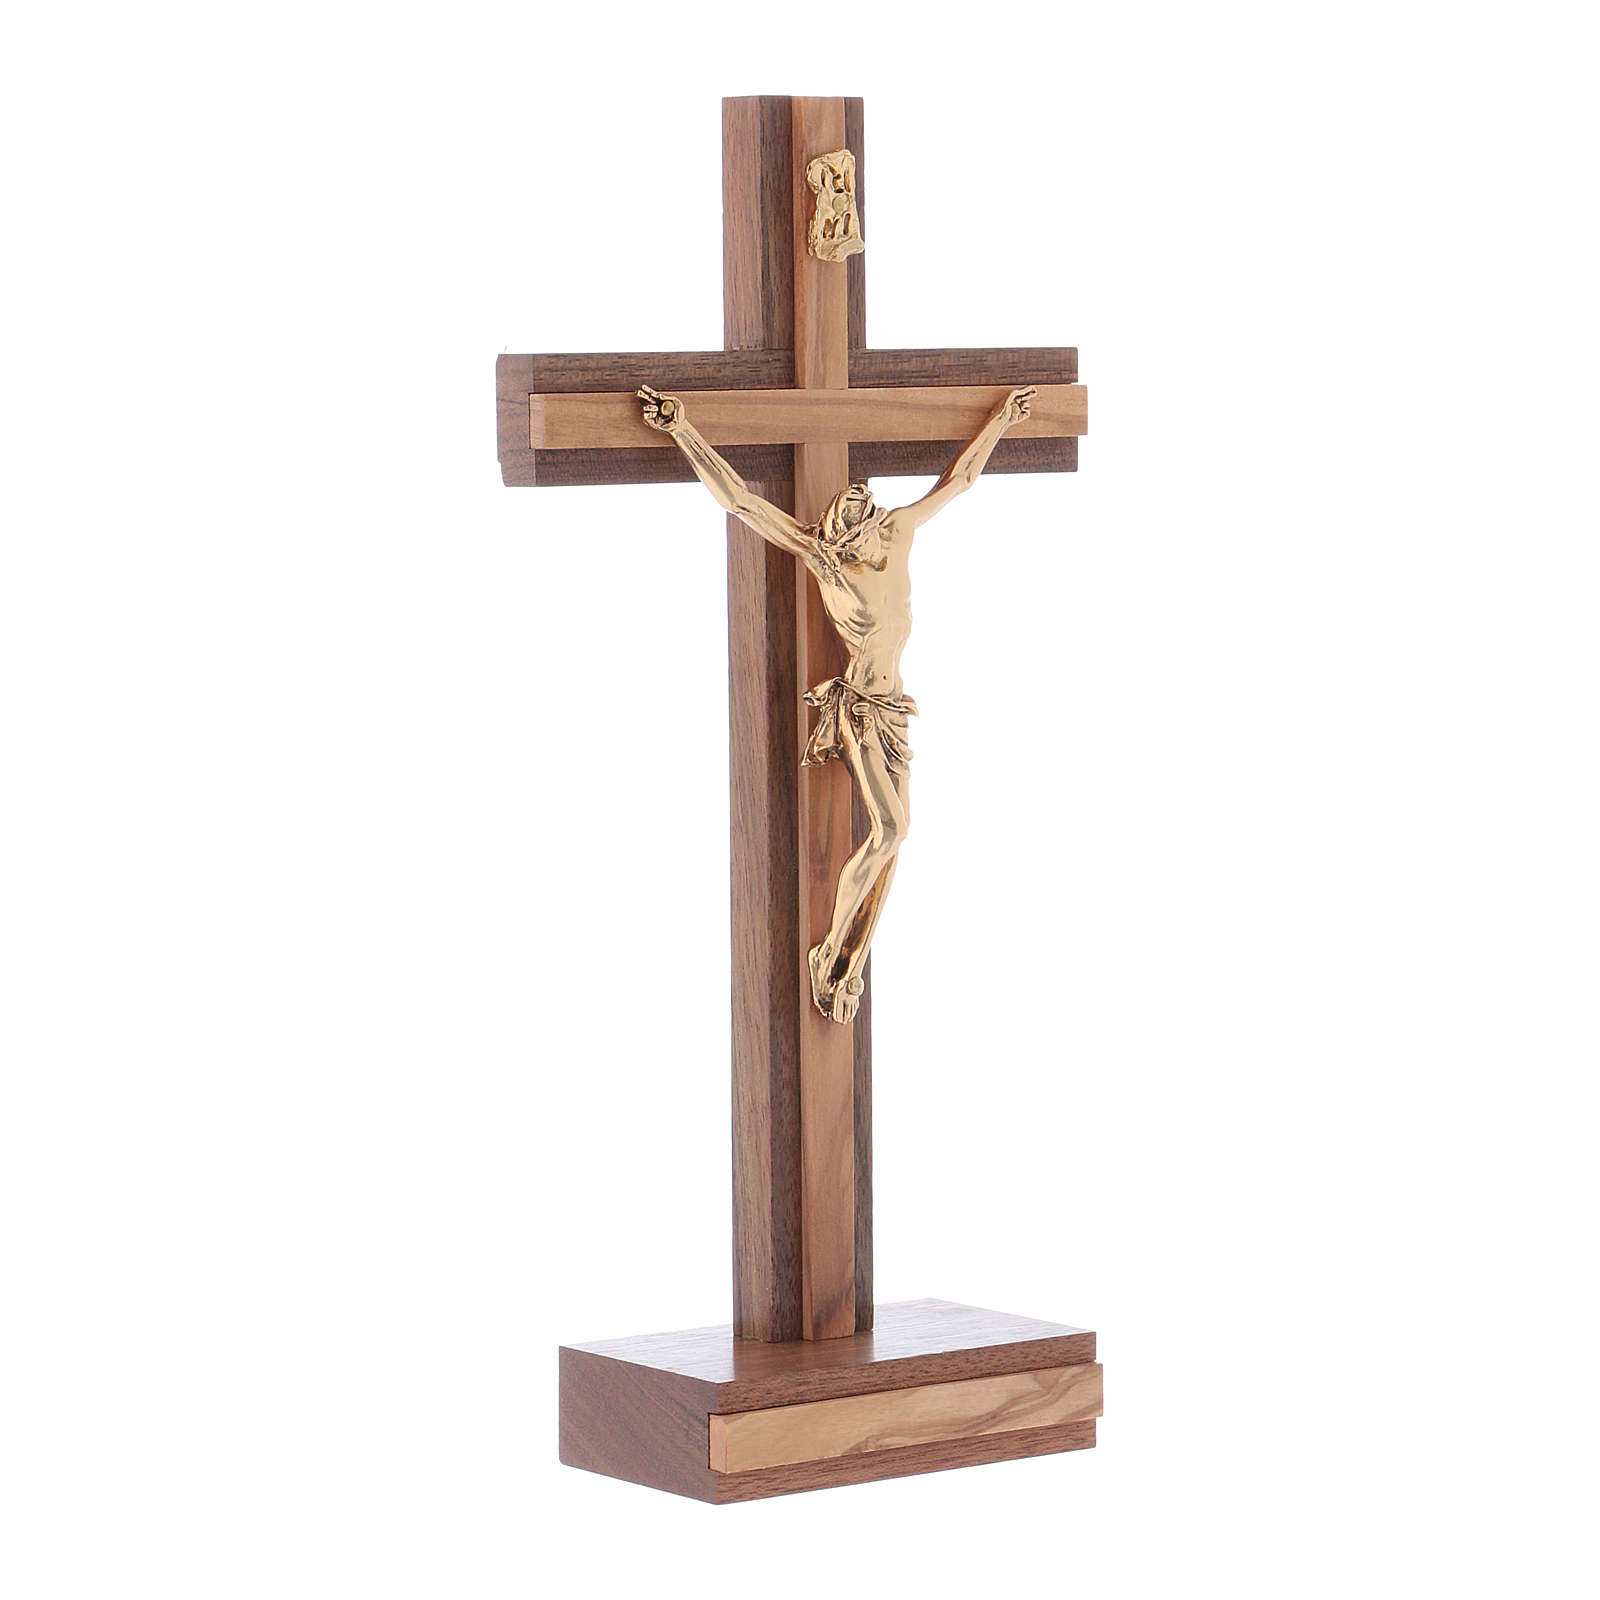 Standing crucifix for table modern design in olive wood and Jesus Christ's body in metal 21 cm 4